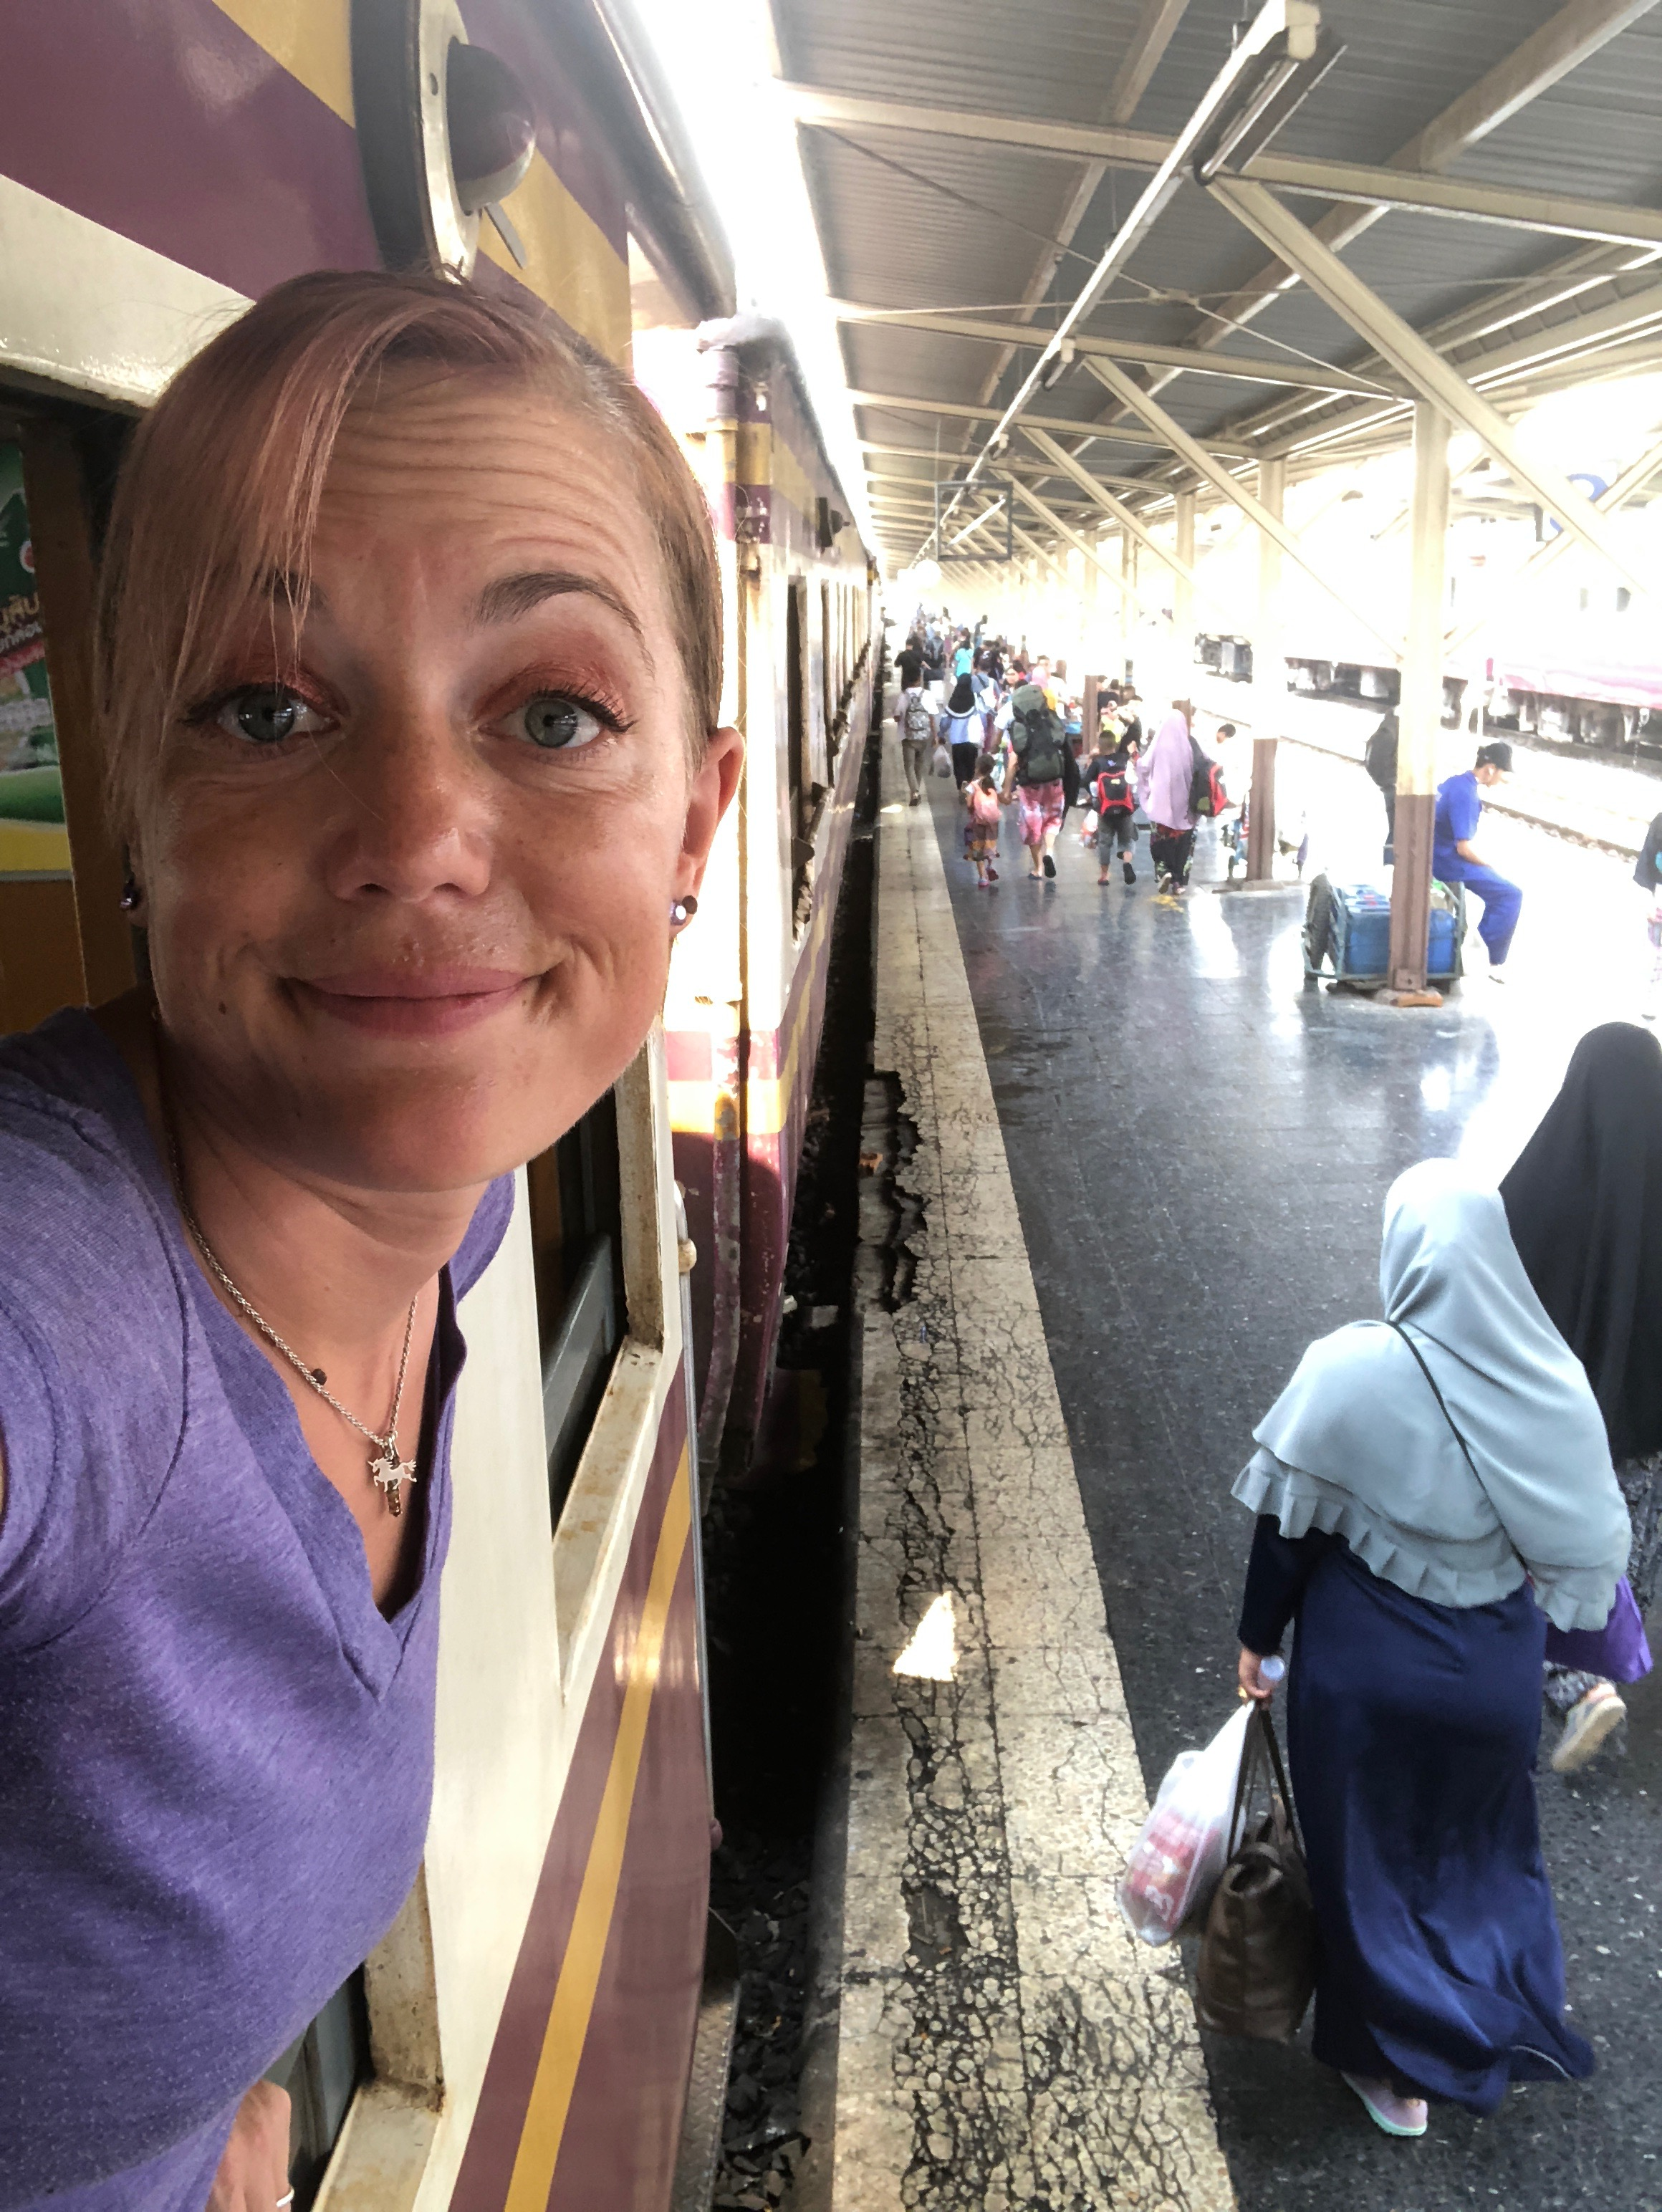 Eventually I made it back to Bangkok and took a train to begin my new job in Hua Hin at the DaVinci International School.  Stay tuned for my next post about my experience settling into Hua Hin and taking my first #visarun to Kuala Lumpur, Malaysia.  Thanks for reading and know I am thinking good thoughts about all of you!